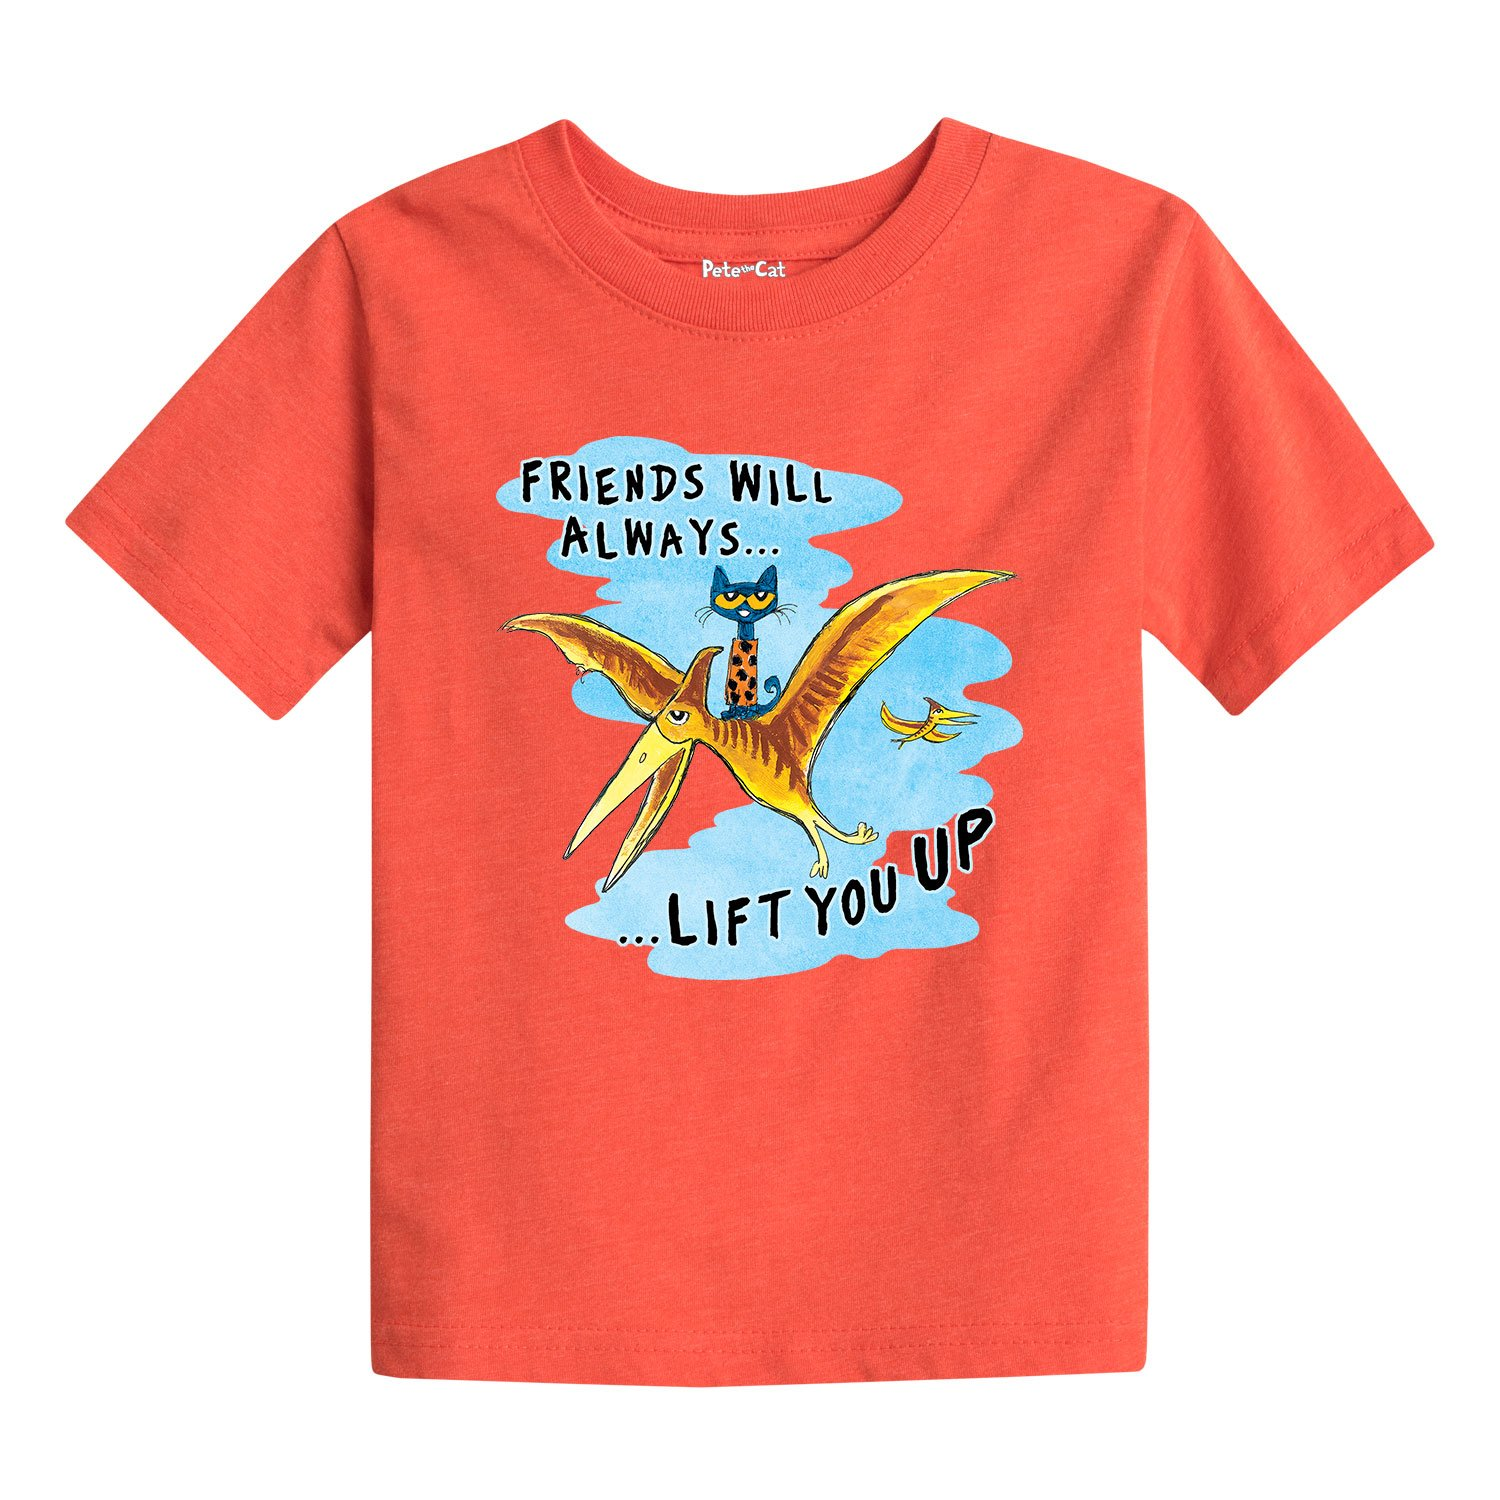 Pete the Cat Friends Lift You Up Toddler Short Sleeve Tee